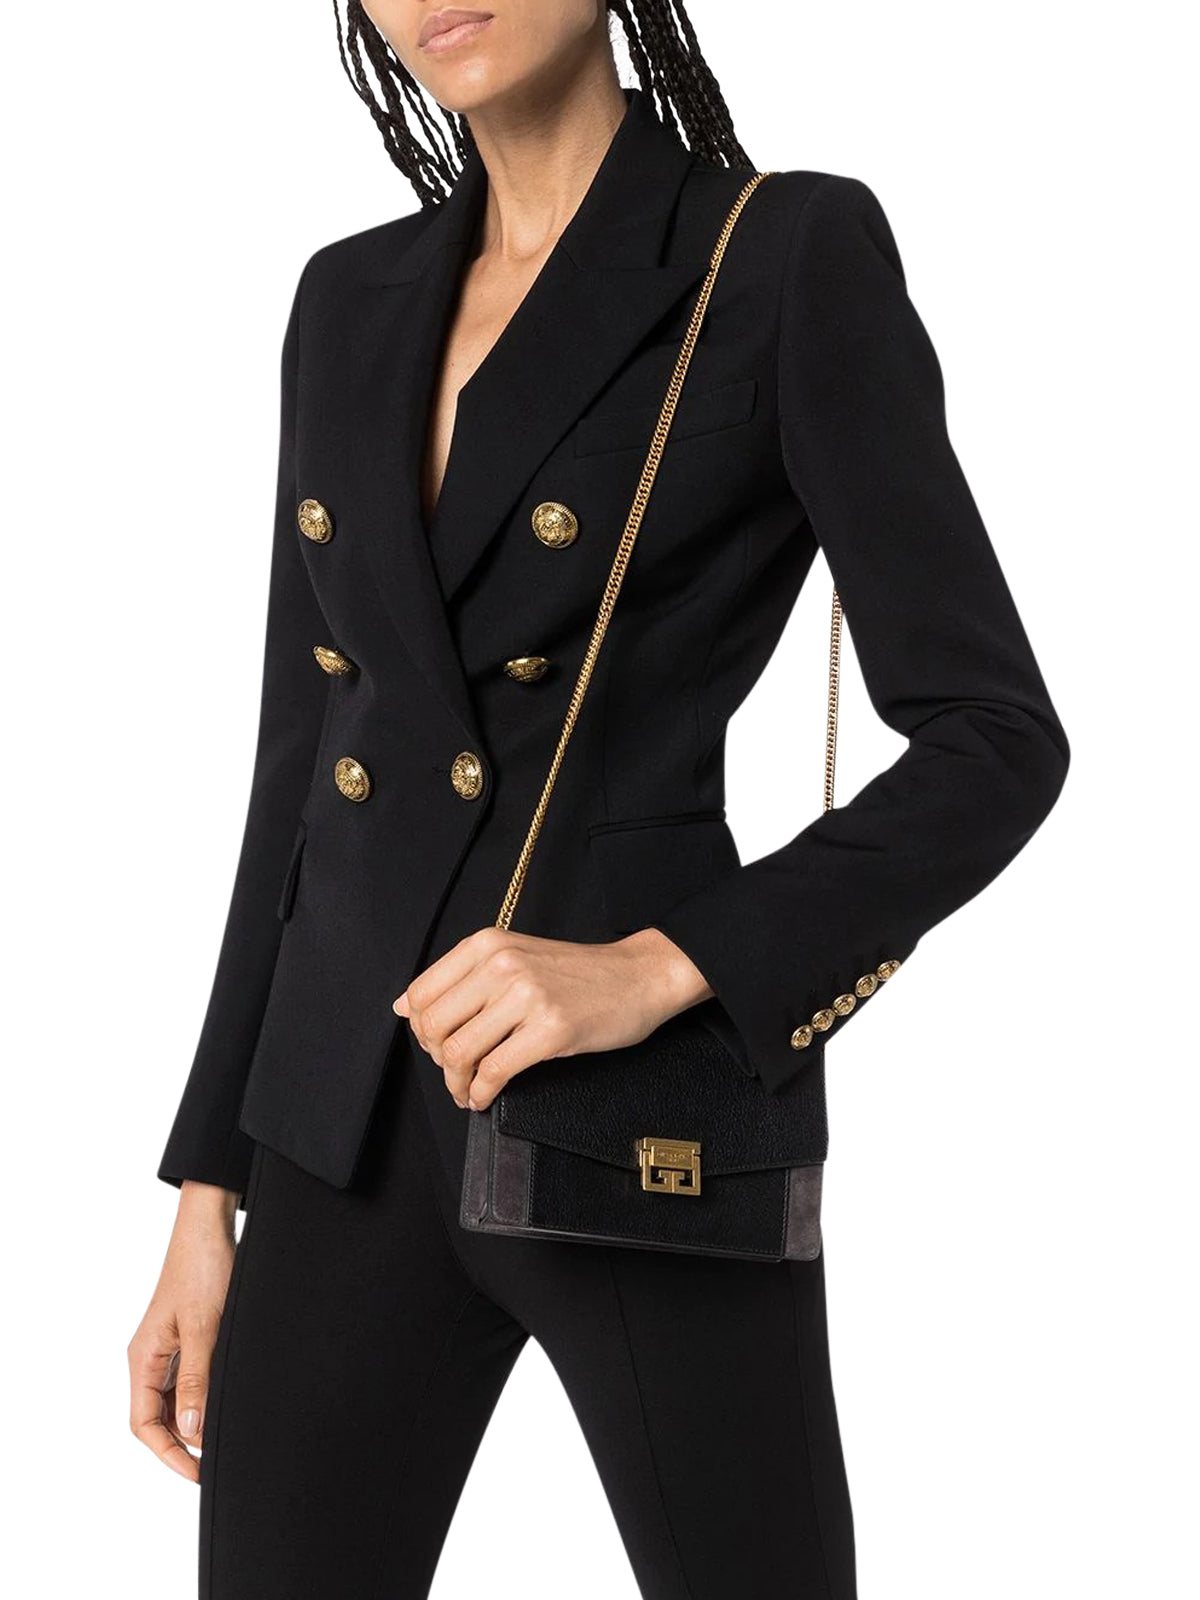 button-embellished blazer